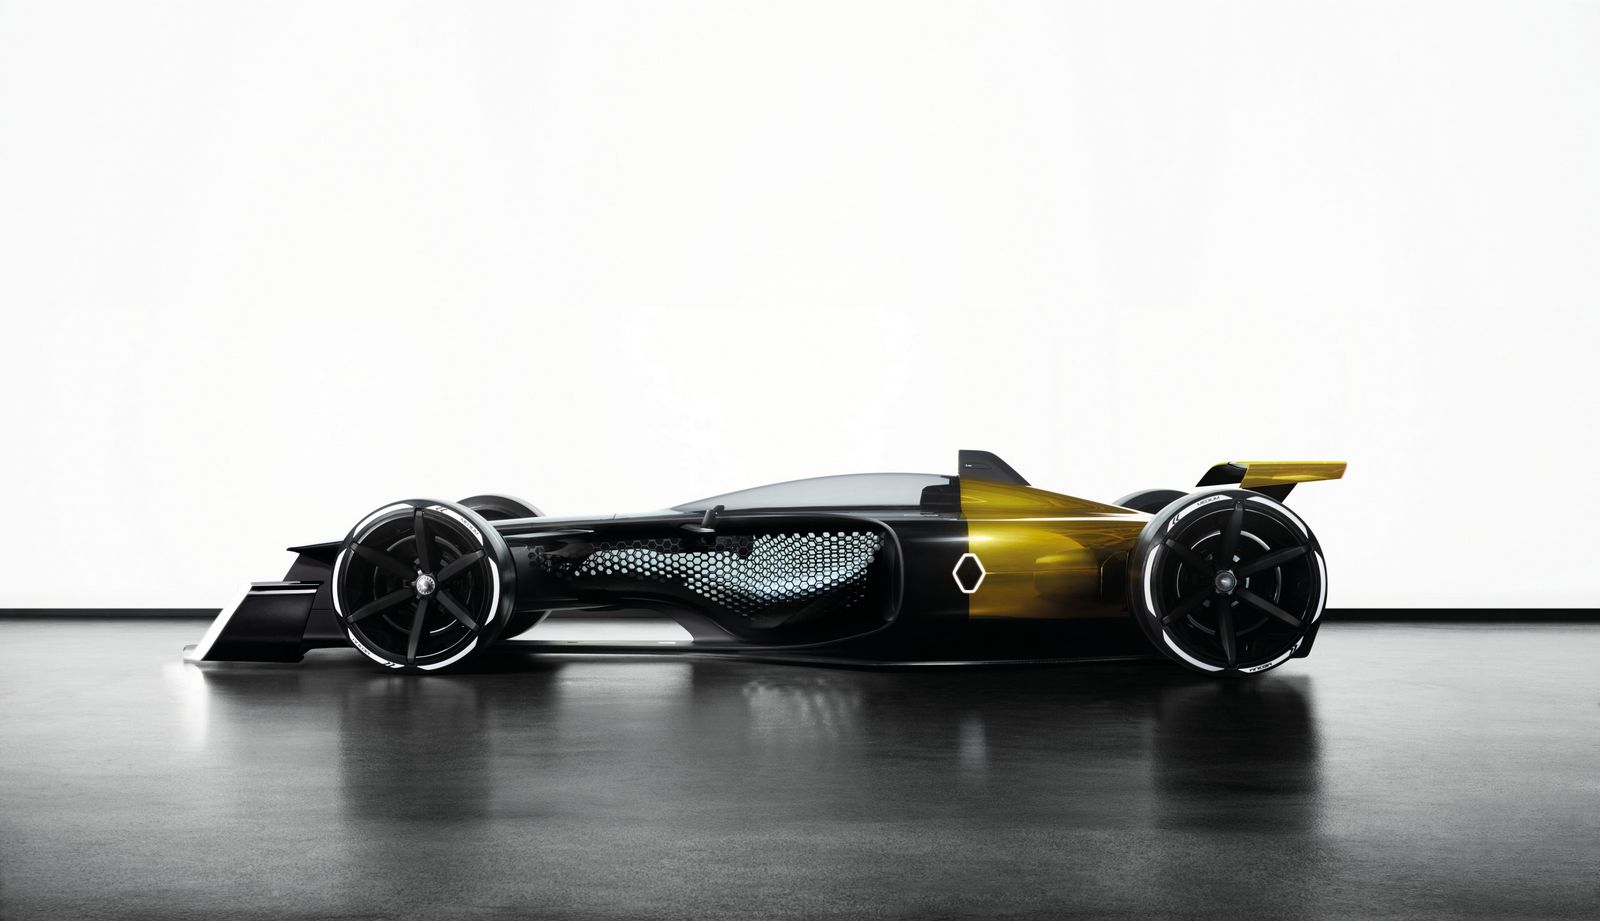 Renault RS 2027 Vision concept (5)